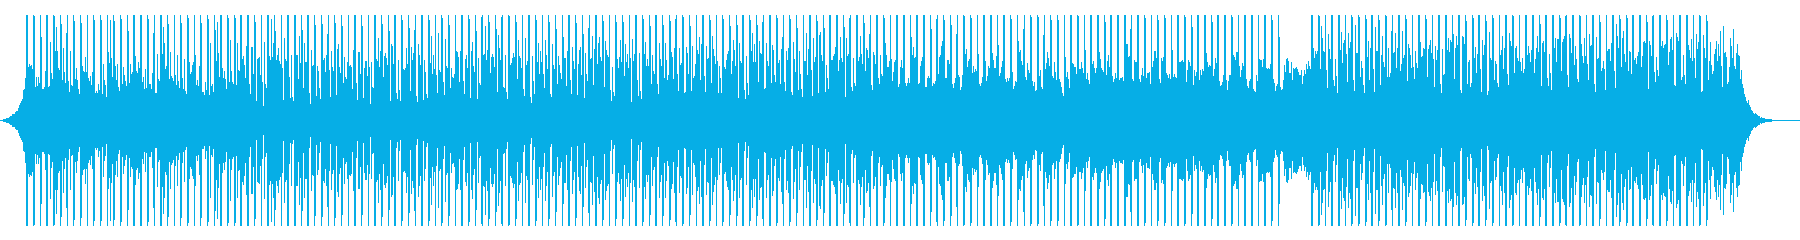 Follow Your Ideas's reproduced waveform